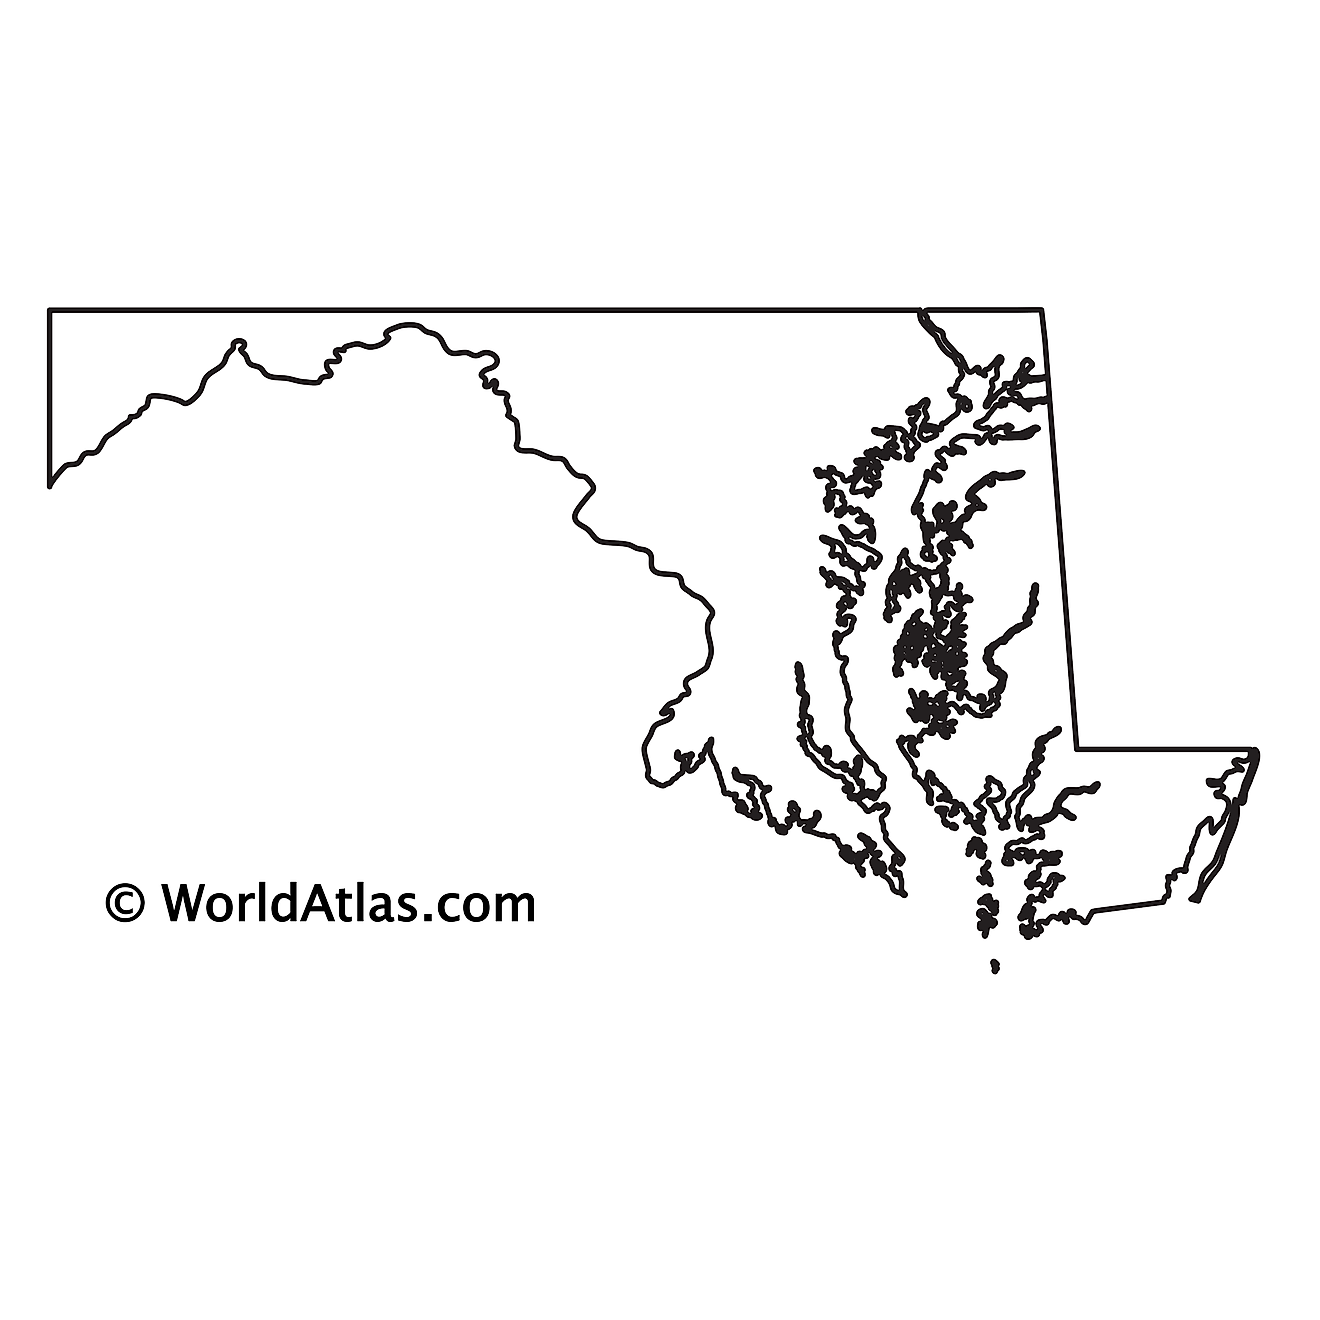 Blank Outline Map of Maryland